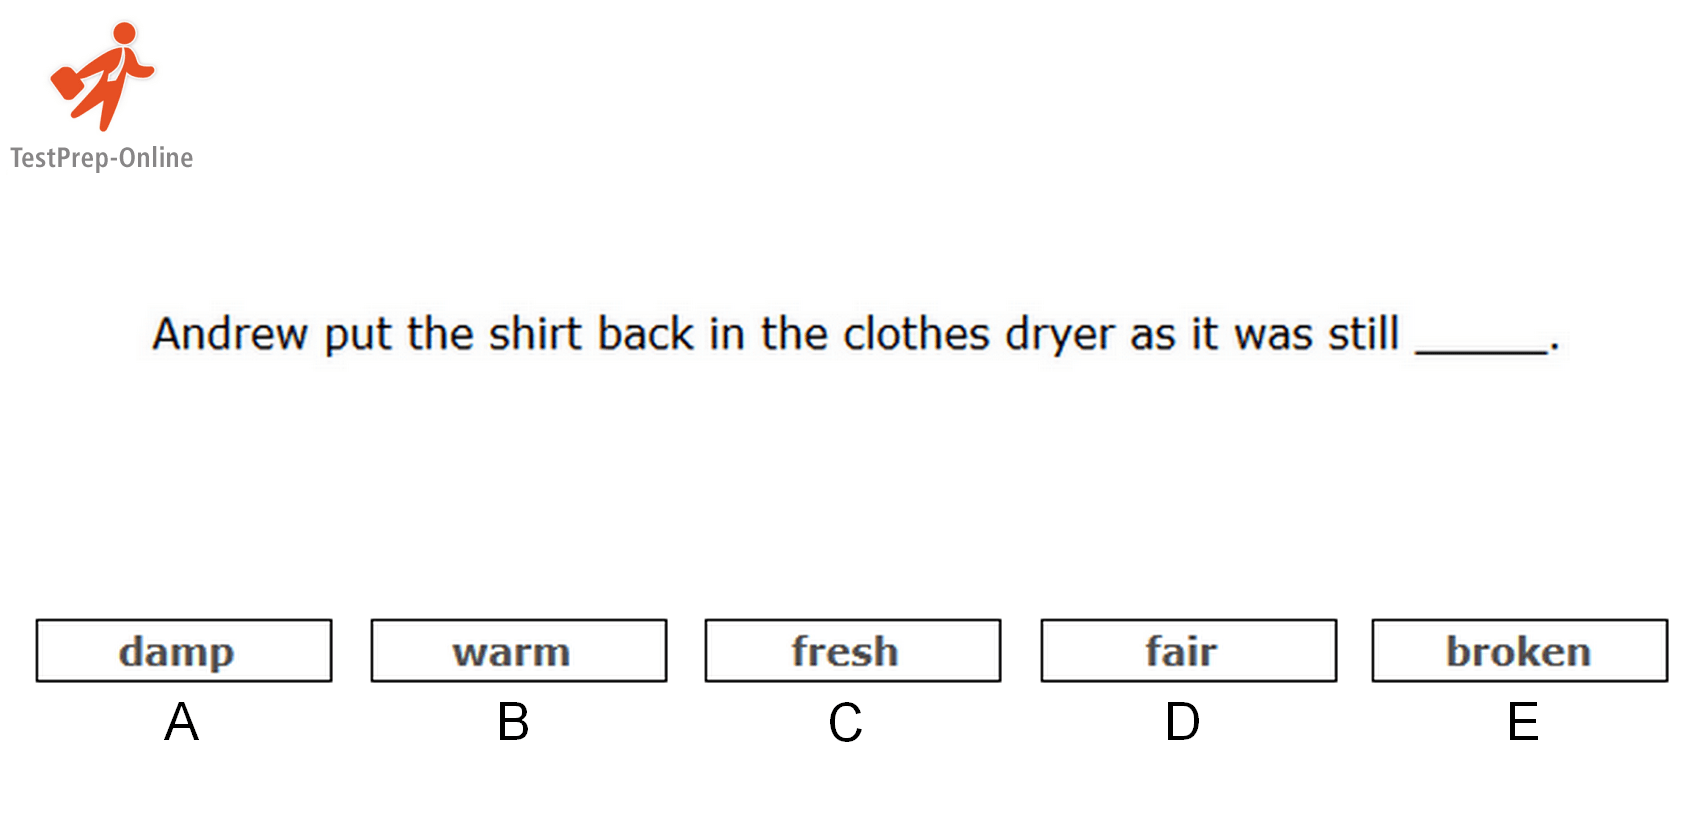 Sample Sentence Completion Question